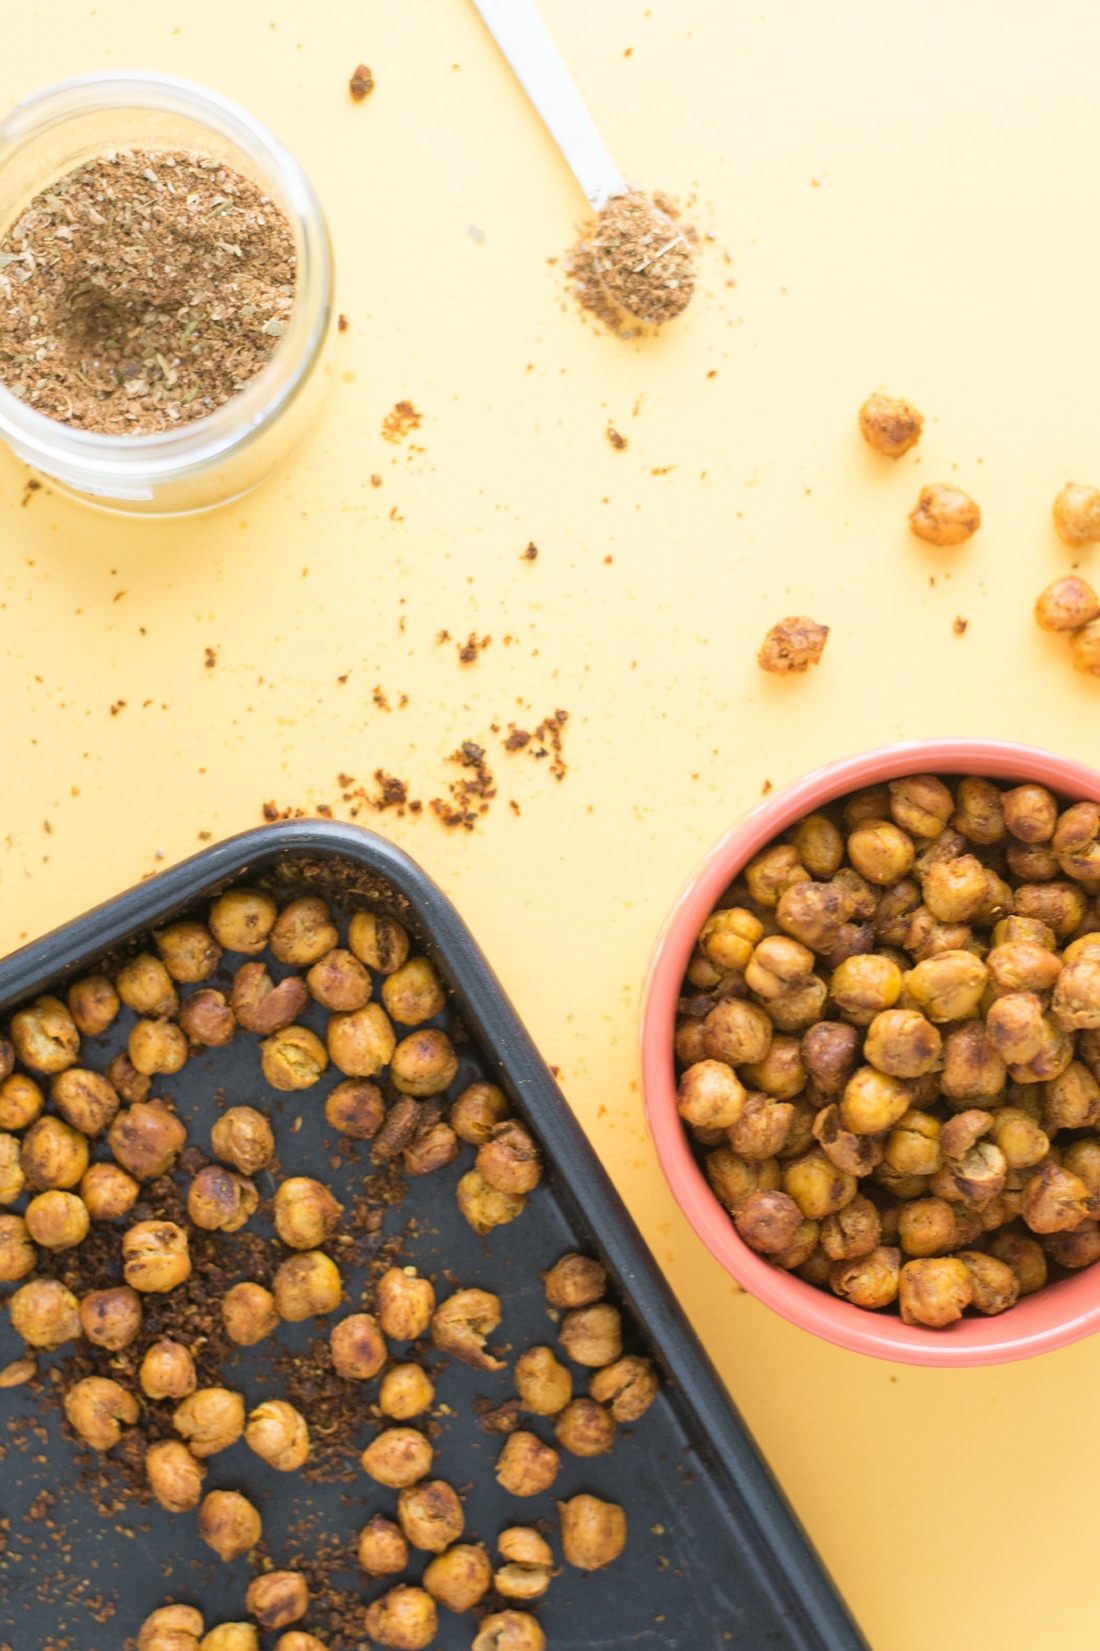 bowl of roasted chickpeas next to baking sheet